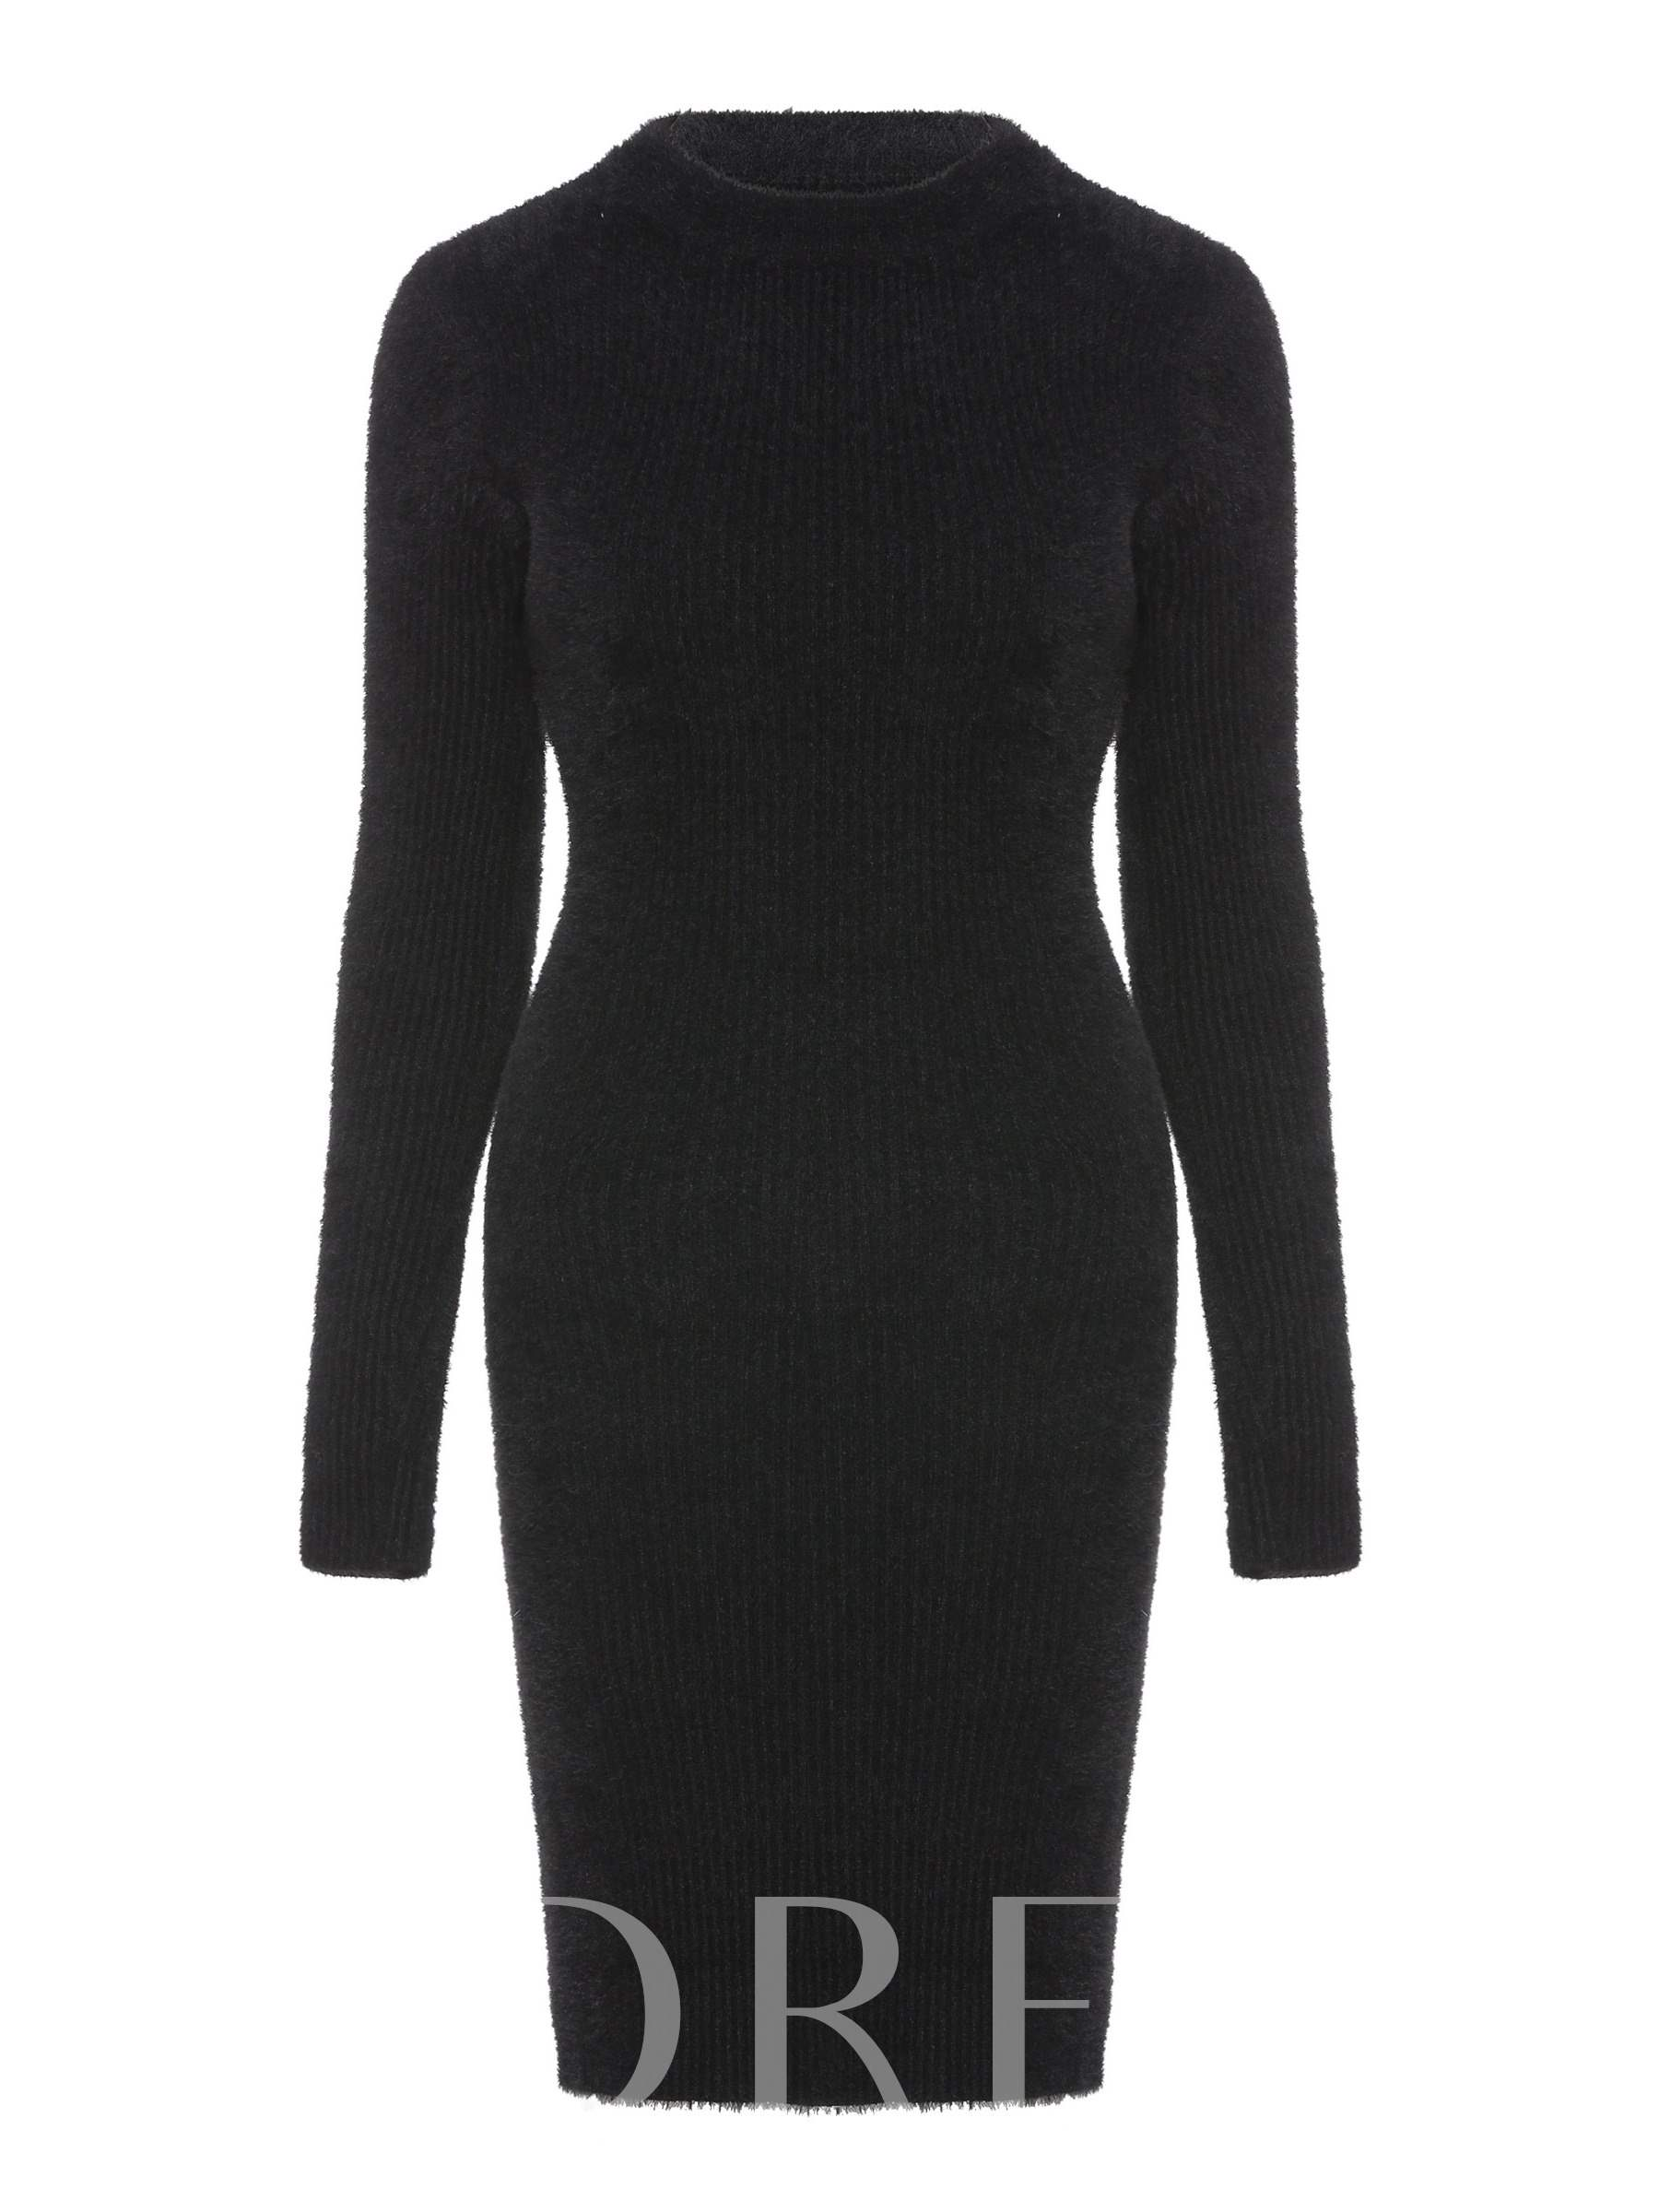 Buy Round Neck Long Sleeve Knit Sweater Dress, Spring,Summer,Fall, 13381255 for $23.84 in TBDress store